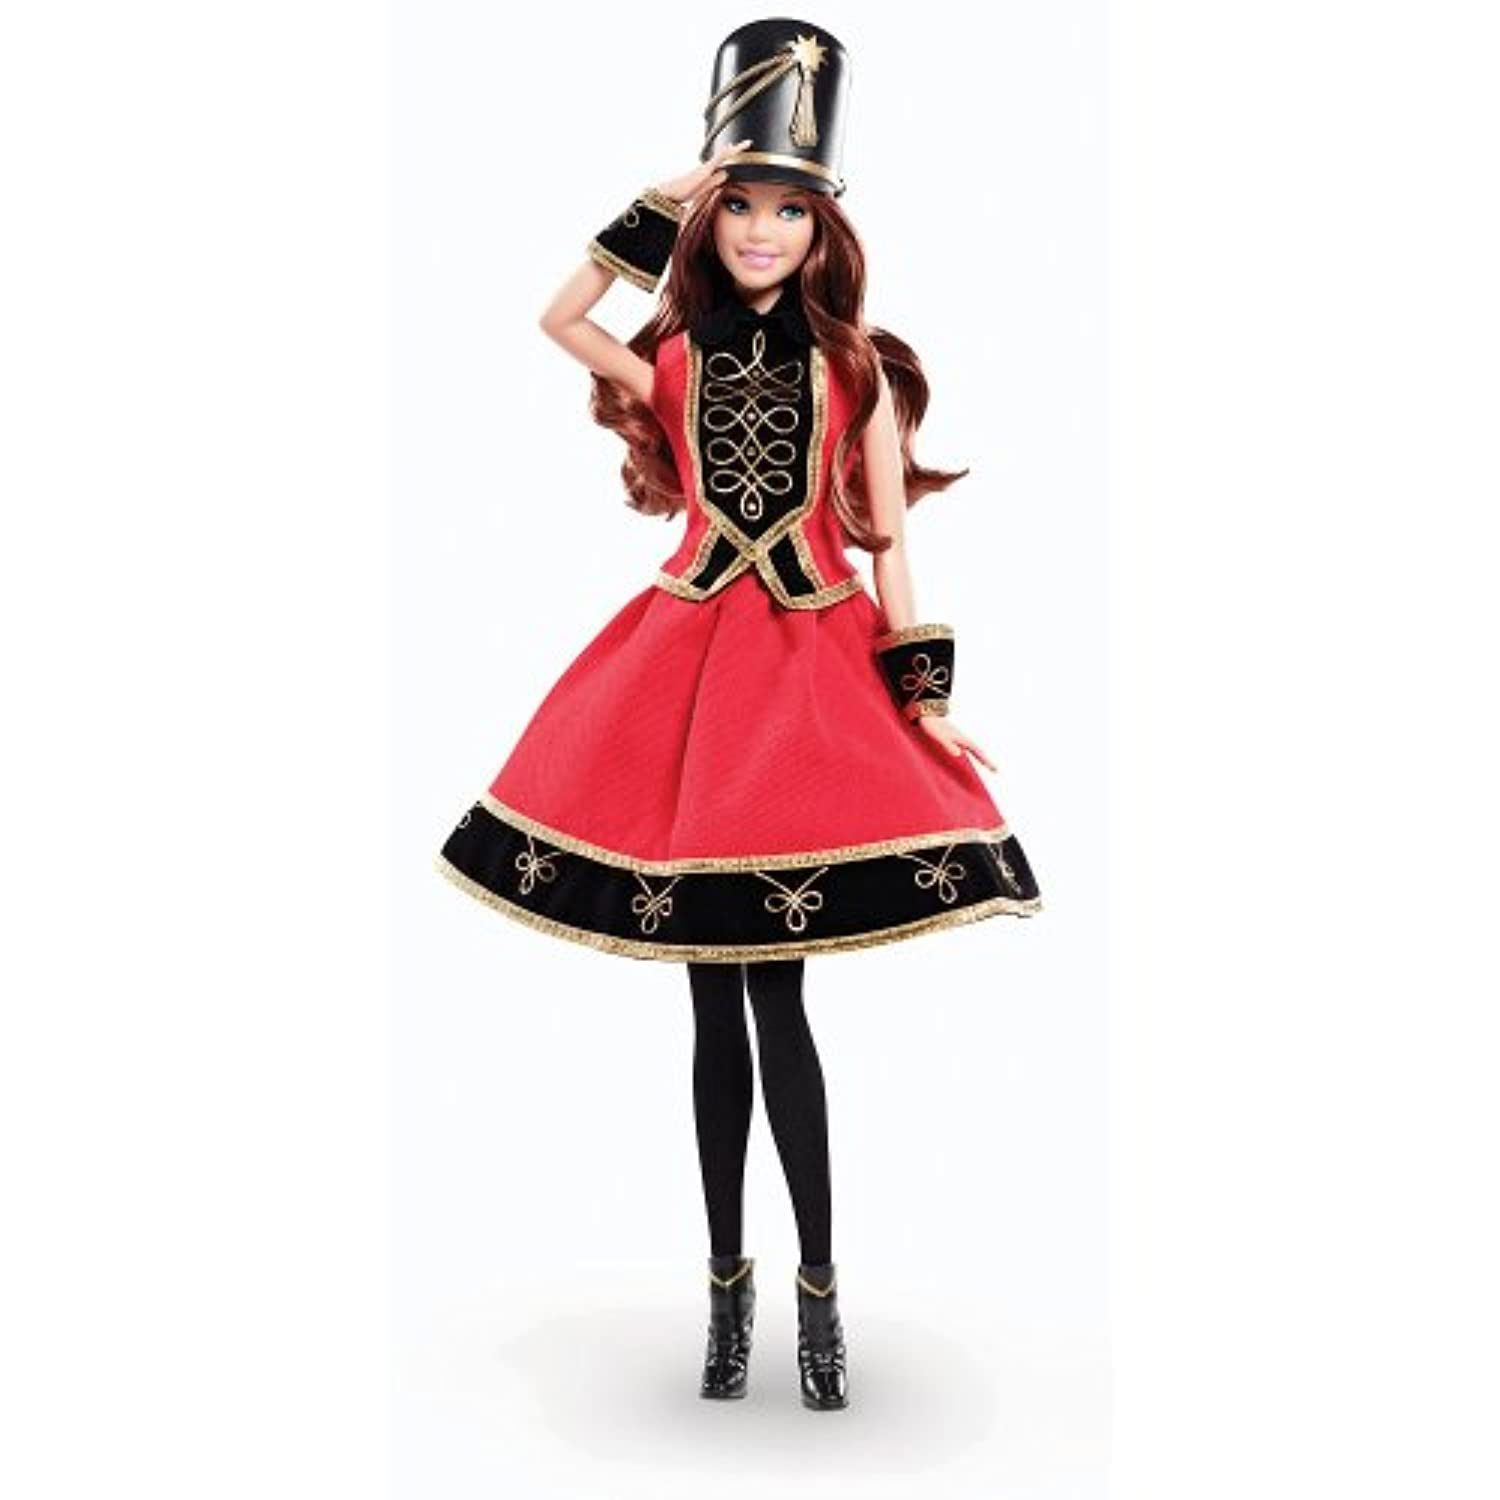 Barbie FAO Schwarz Toy Soldier Doll - Brunette/USショップ限定